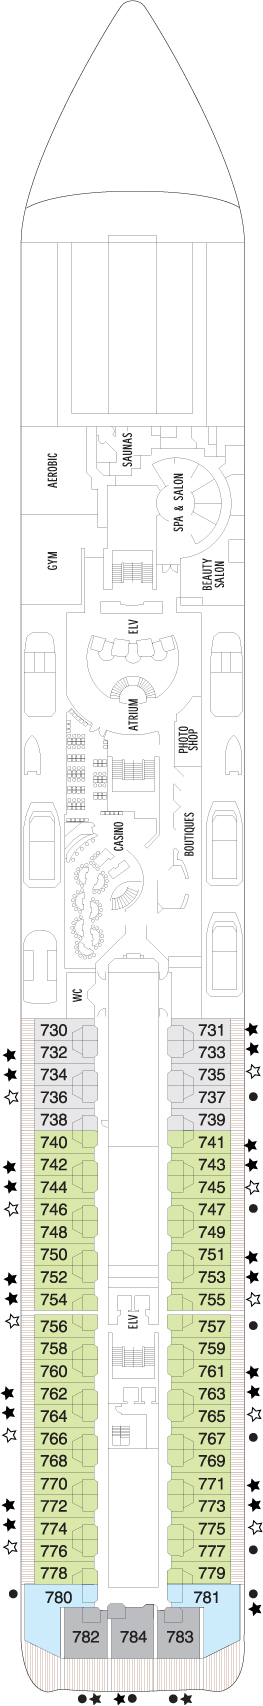 Seven Seas Mariner Deck 7 layout